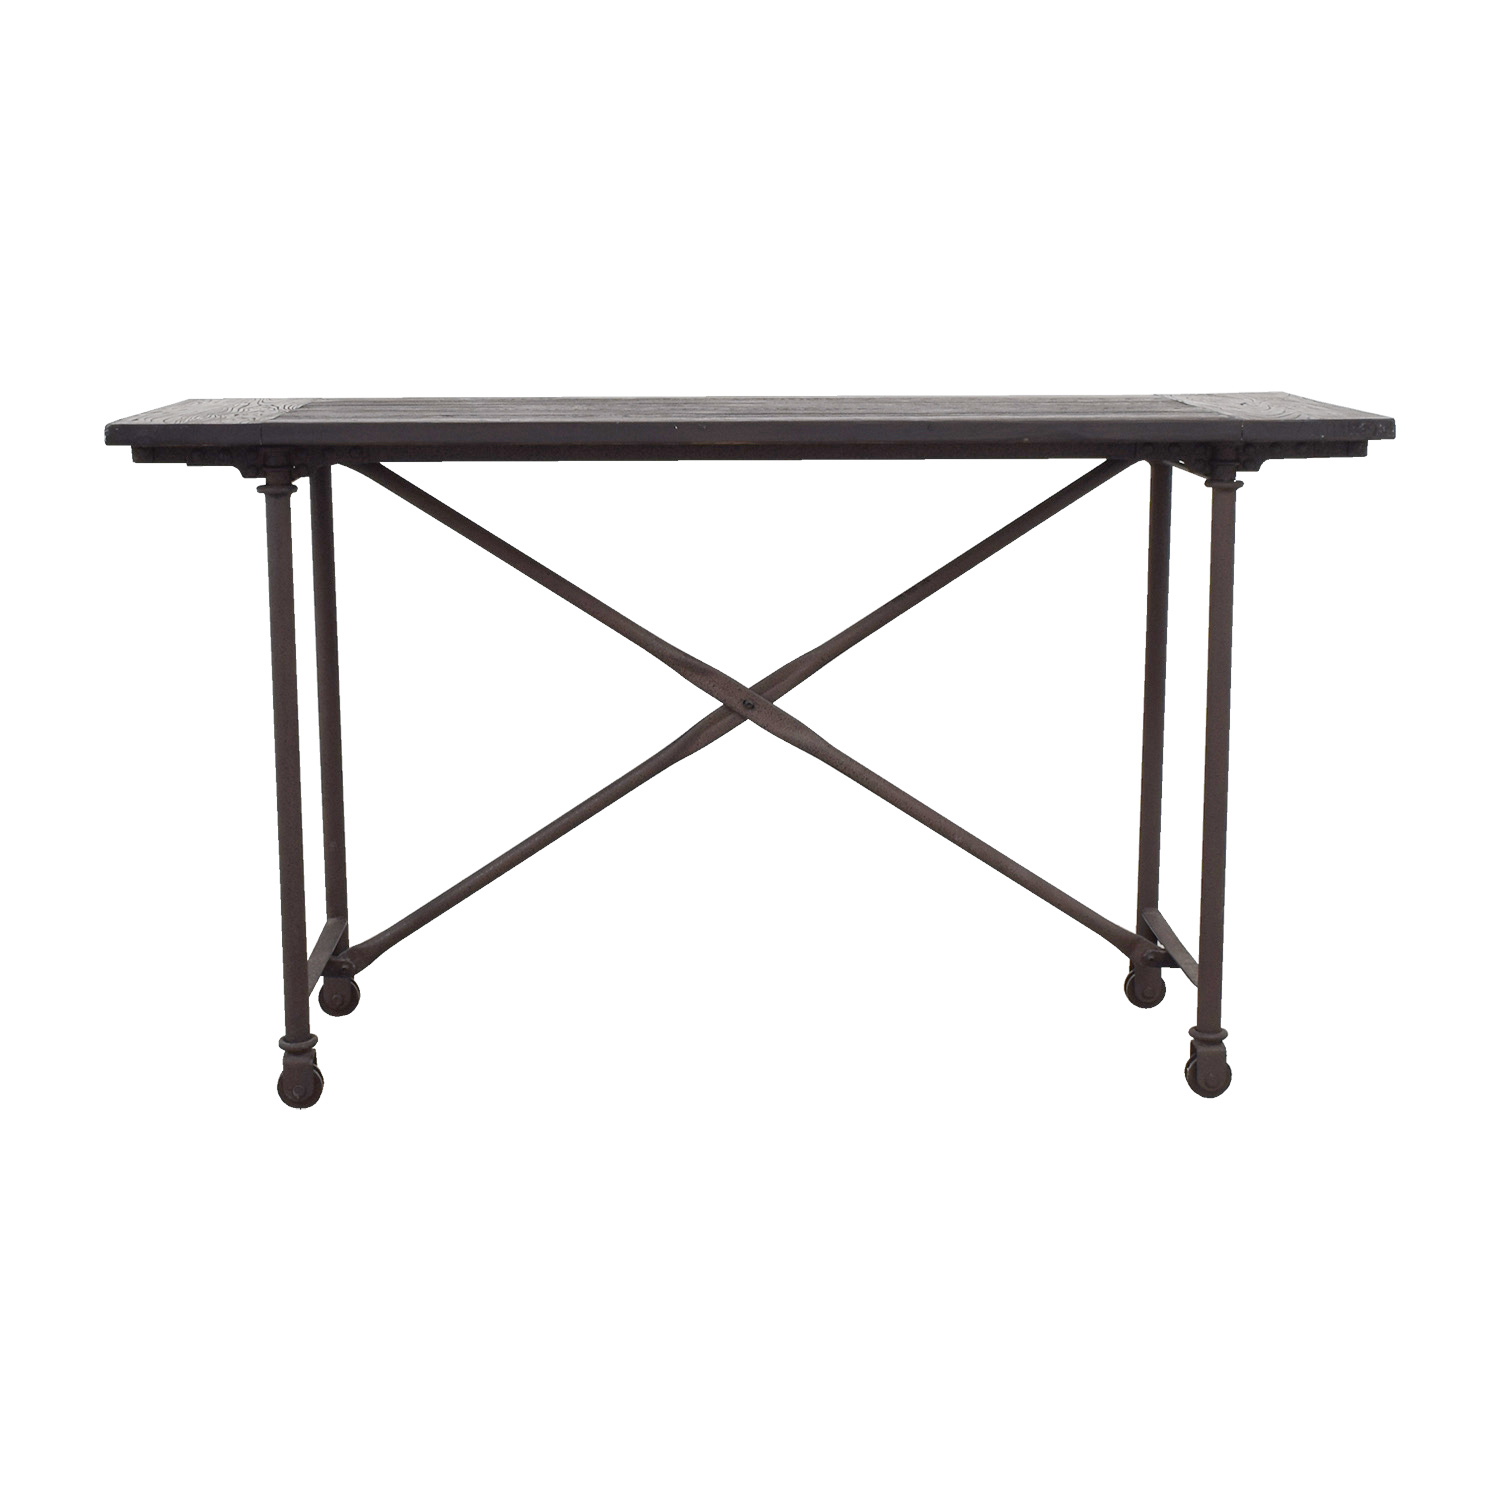 Dinner Tables Used Dinner Tables For Sale